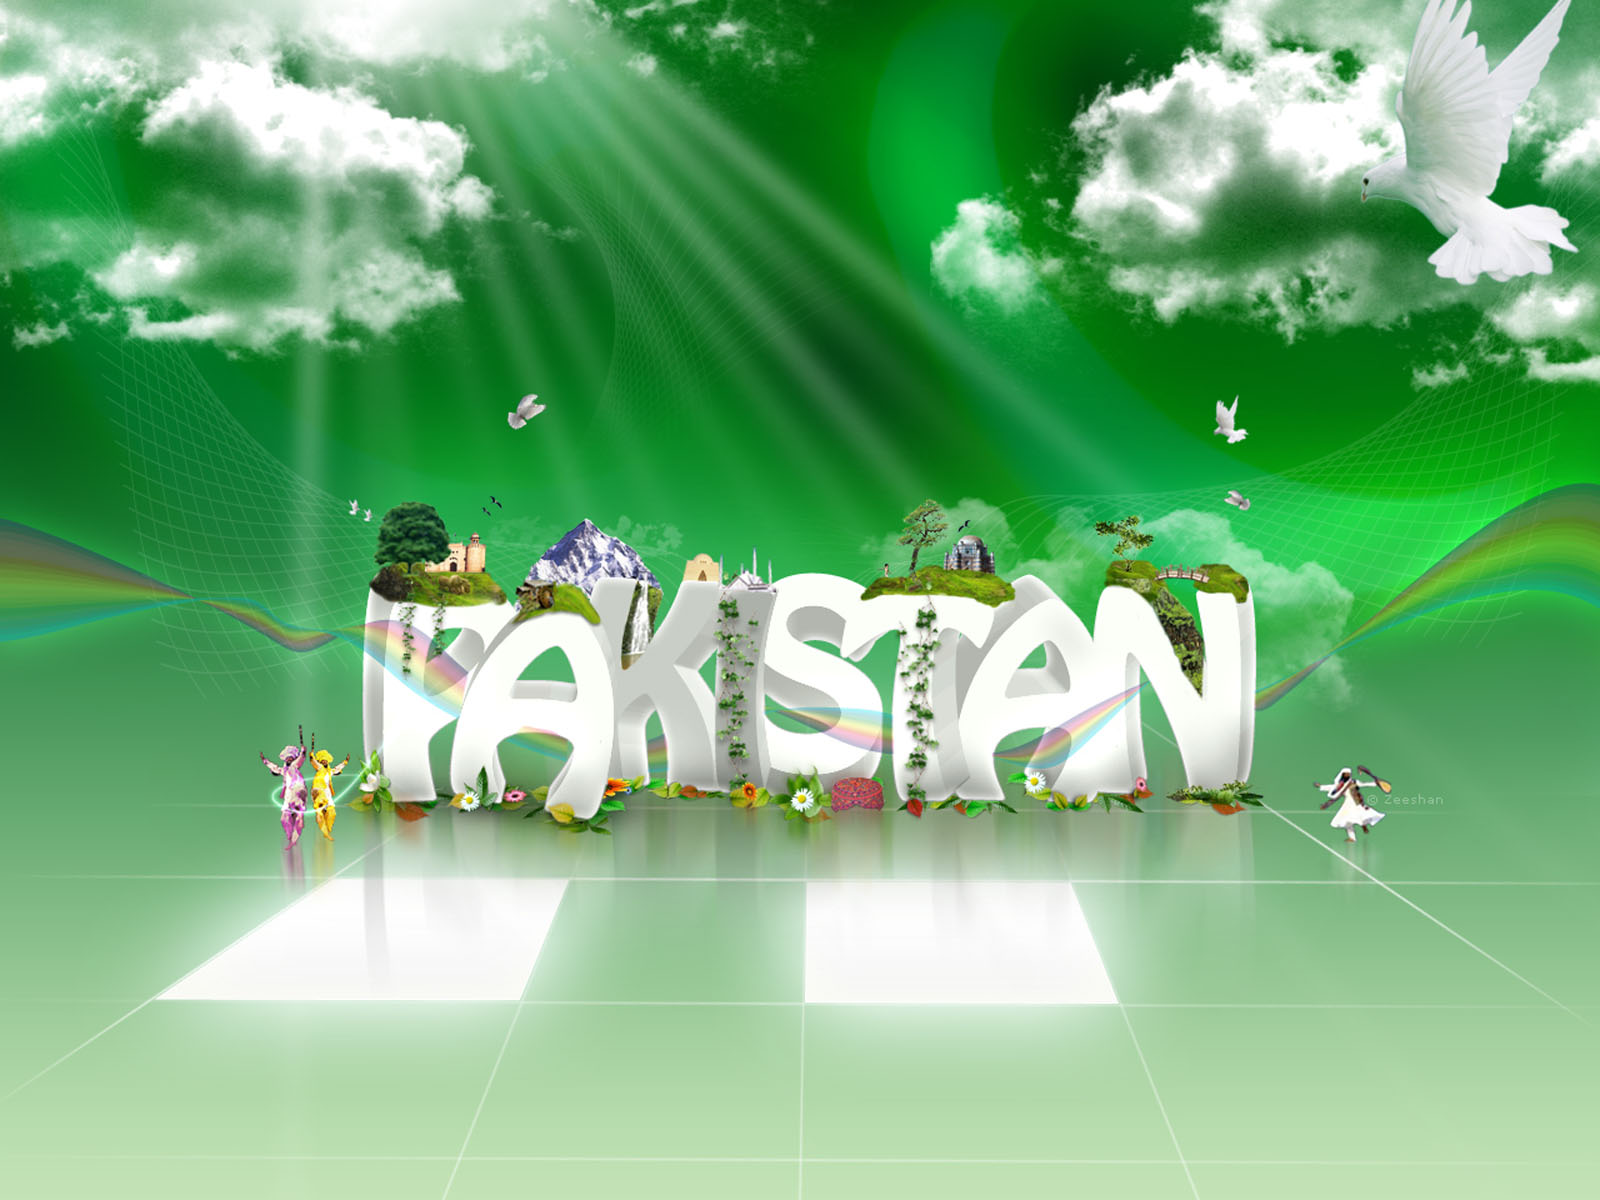 http://3.bp.blogspot.com/-DiClkZ2X9FU/UECq0-mdwyI/AAAAAAAAEqQ/W_Eh3GEqXhg/s1600/wallpapers-atoz.blog-Pakistan-Flag-Wallpapers-03.jpg